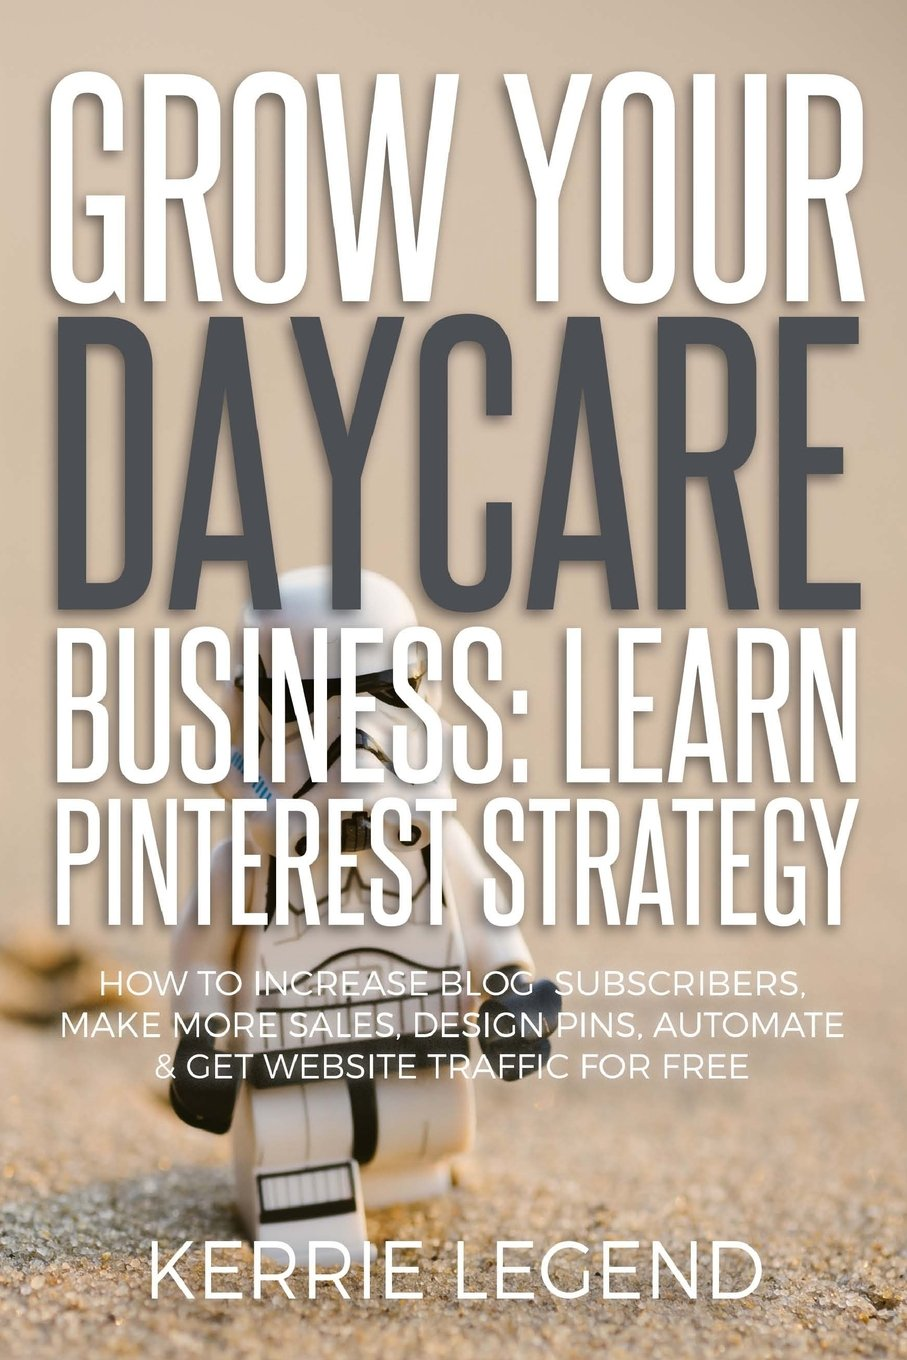 Grow Your Daycare Business: Learn Pinterest Strategy: How to Increase Blog Subscribers, Make More Sales, Design Pins, Automate & Get Website Traffic for Free pdf epub